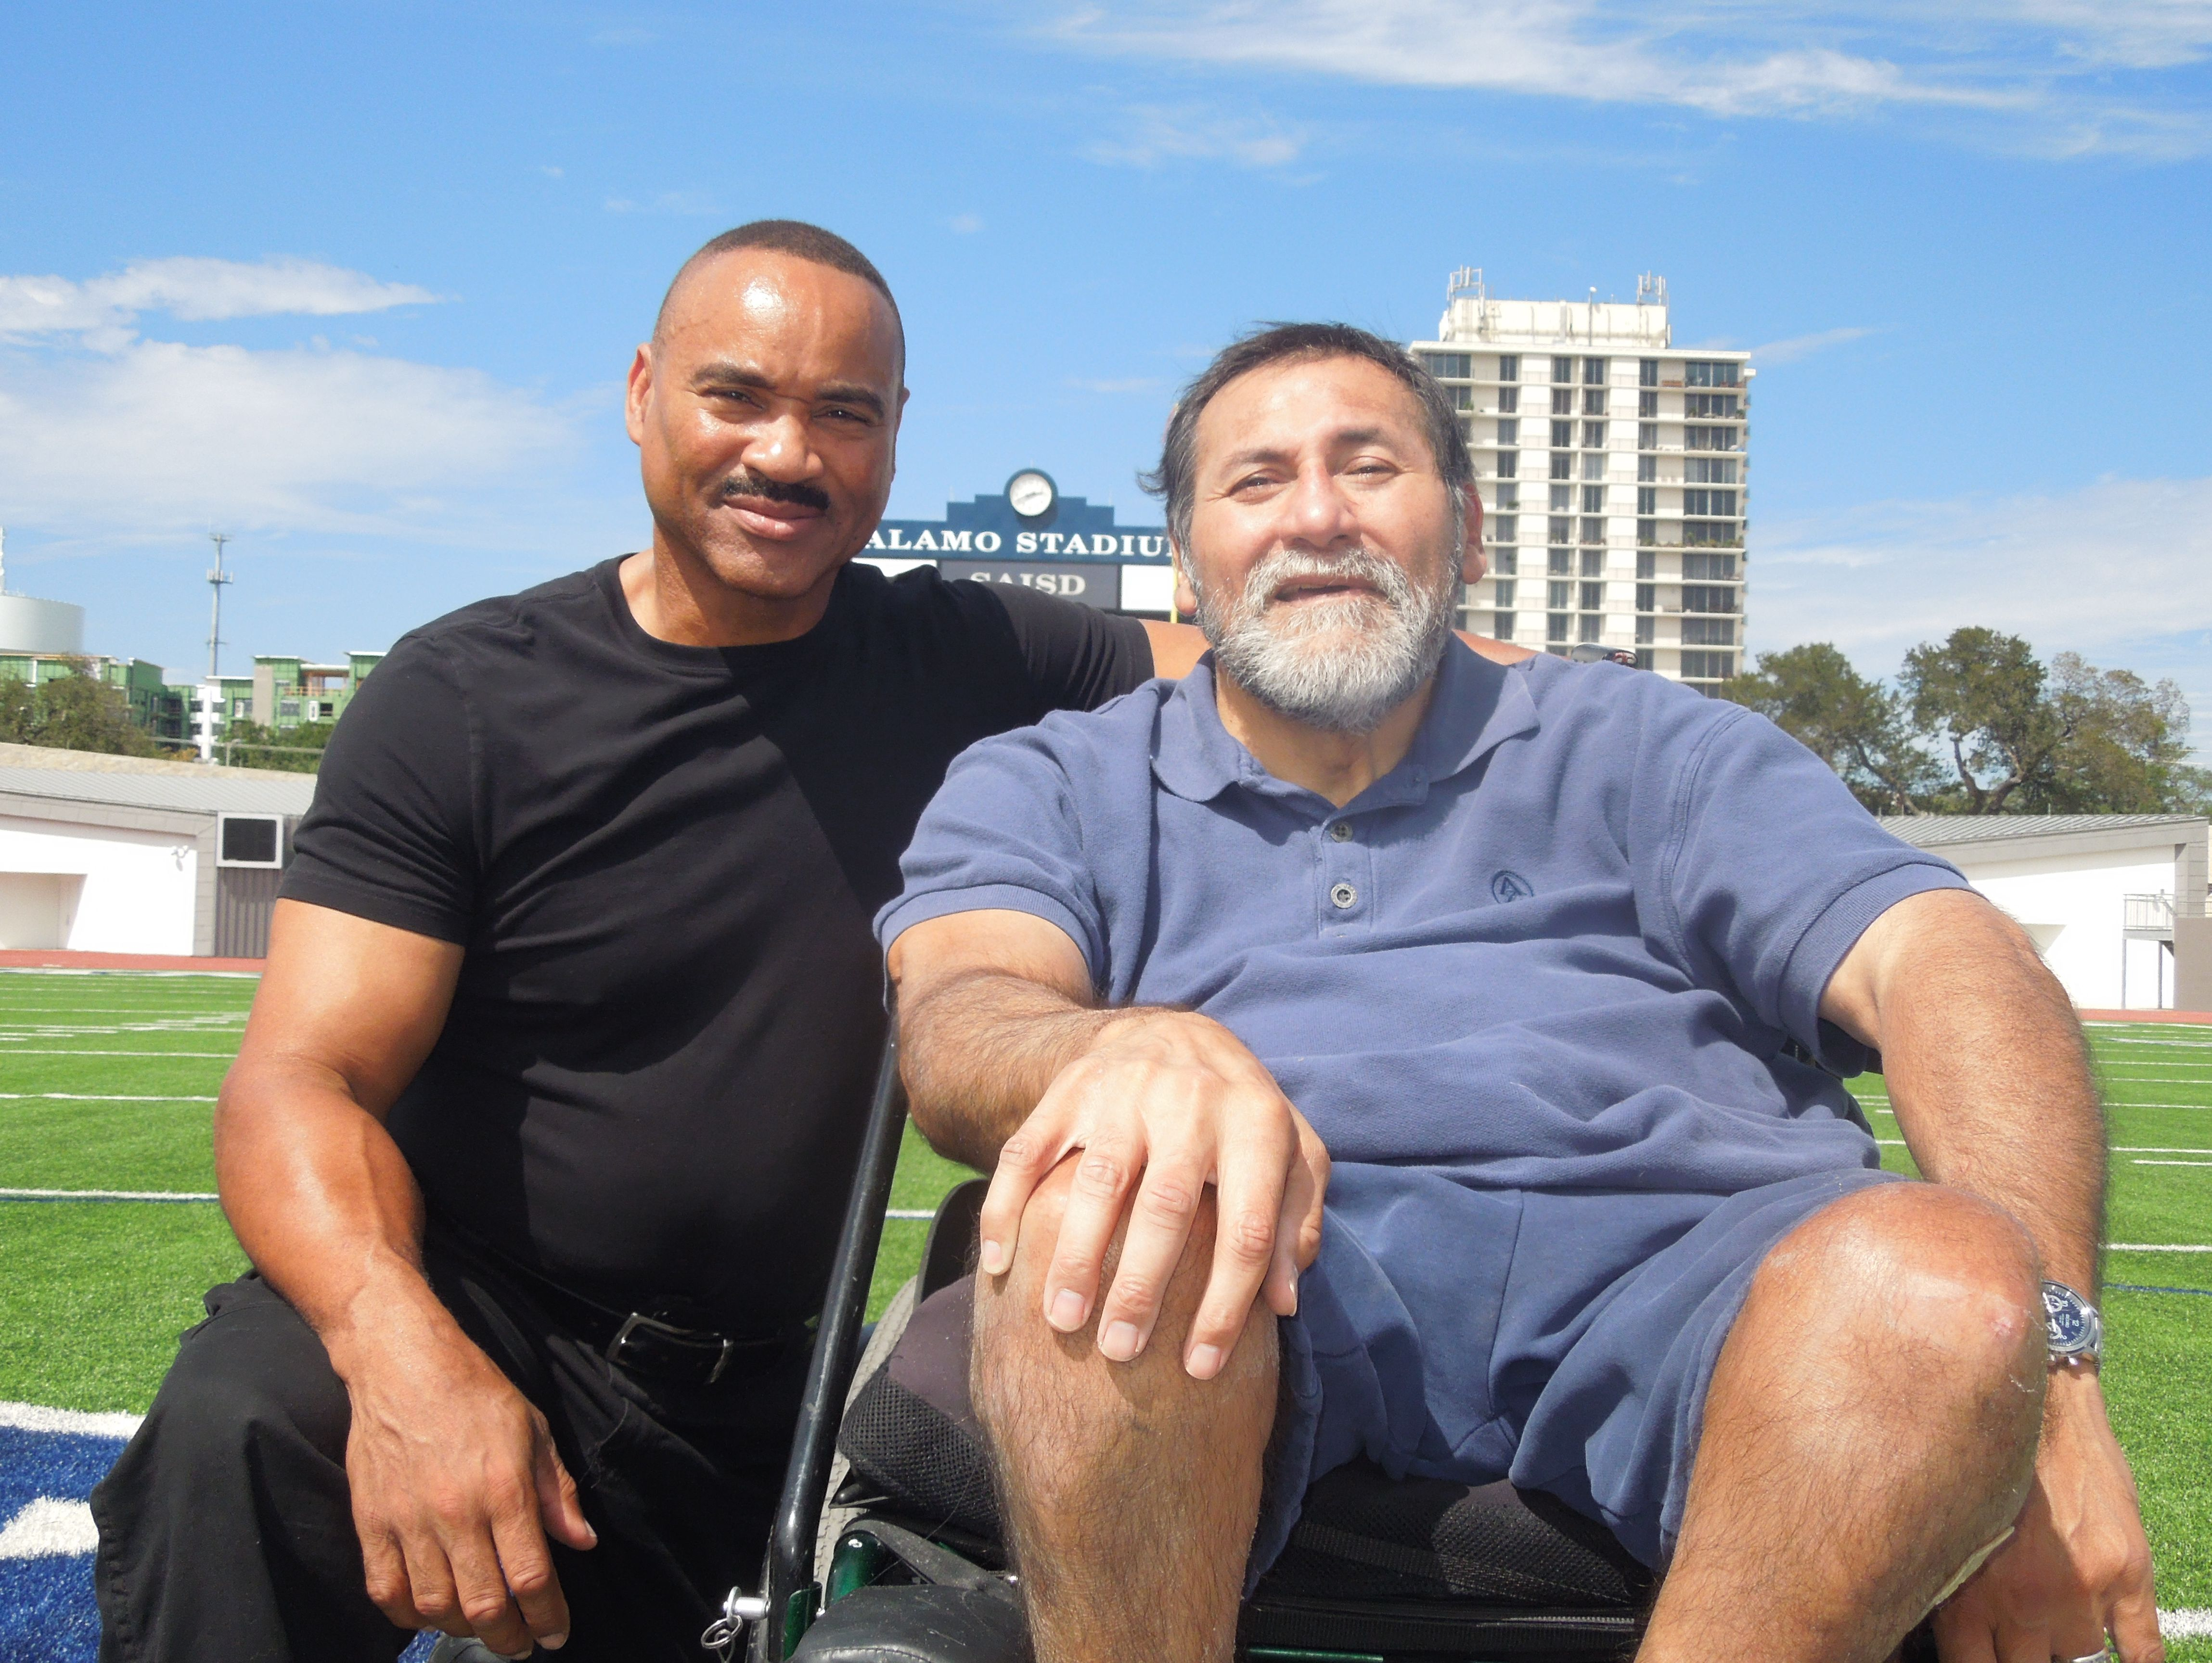 Jefferson graduate Gabe Rivera, right, pictured with Sam Houston alum Gary Green, was an All-America defensive lineman at Texas Tech before being picked in the first round of the NFL draft by the Pittsburgh Steelers in 1983.